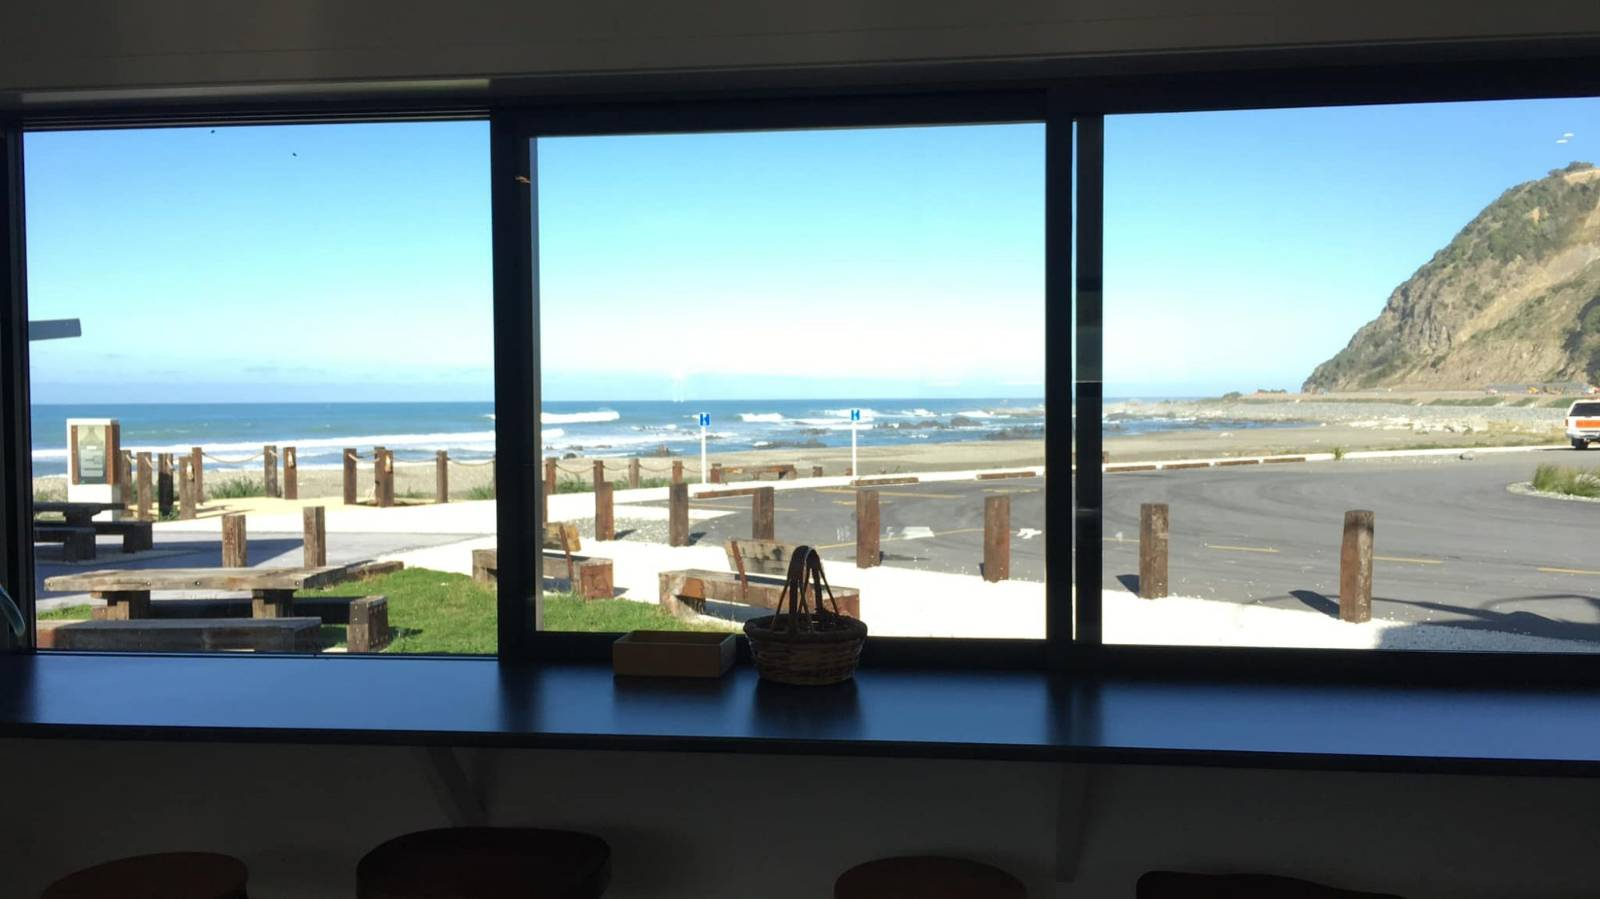 Dolphins at lunch: Is this NZ's best cafe view?